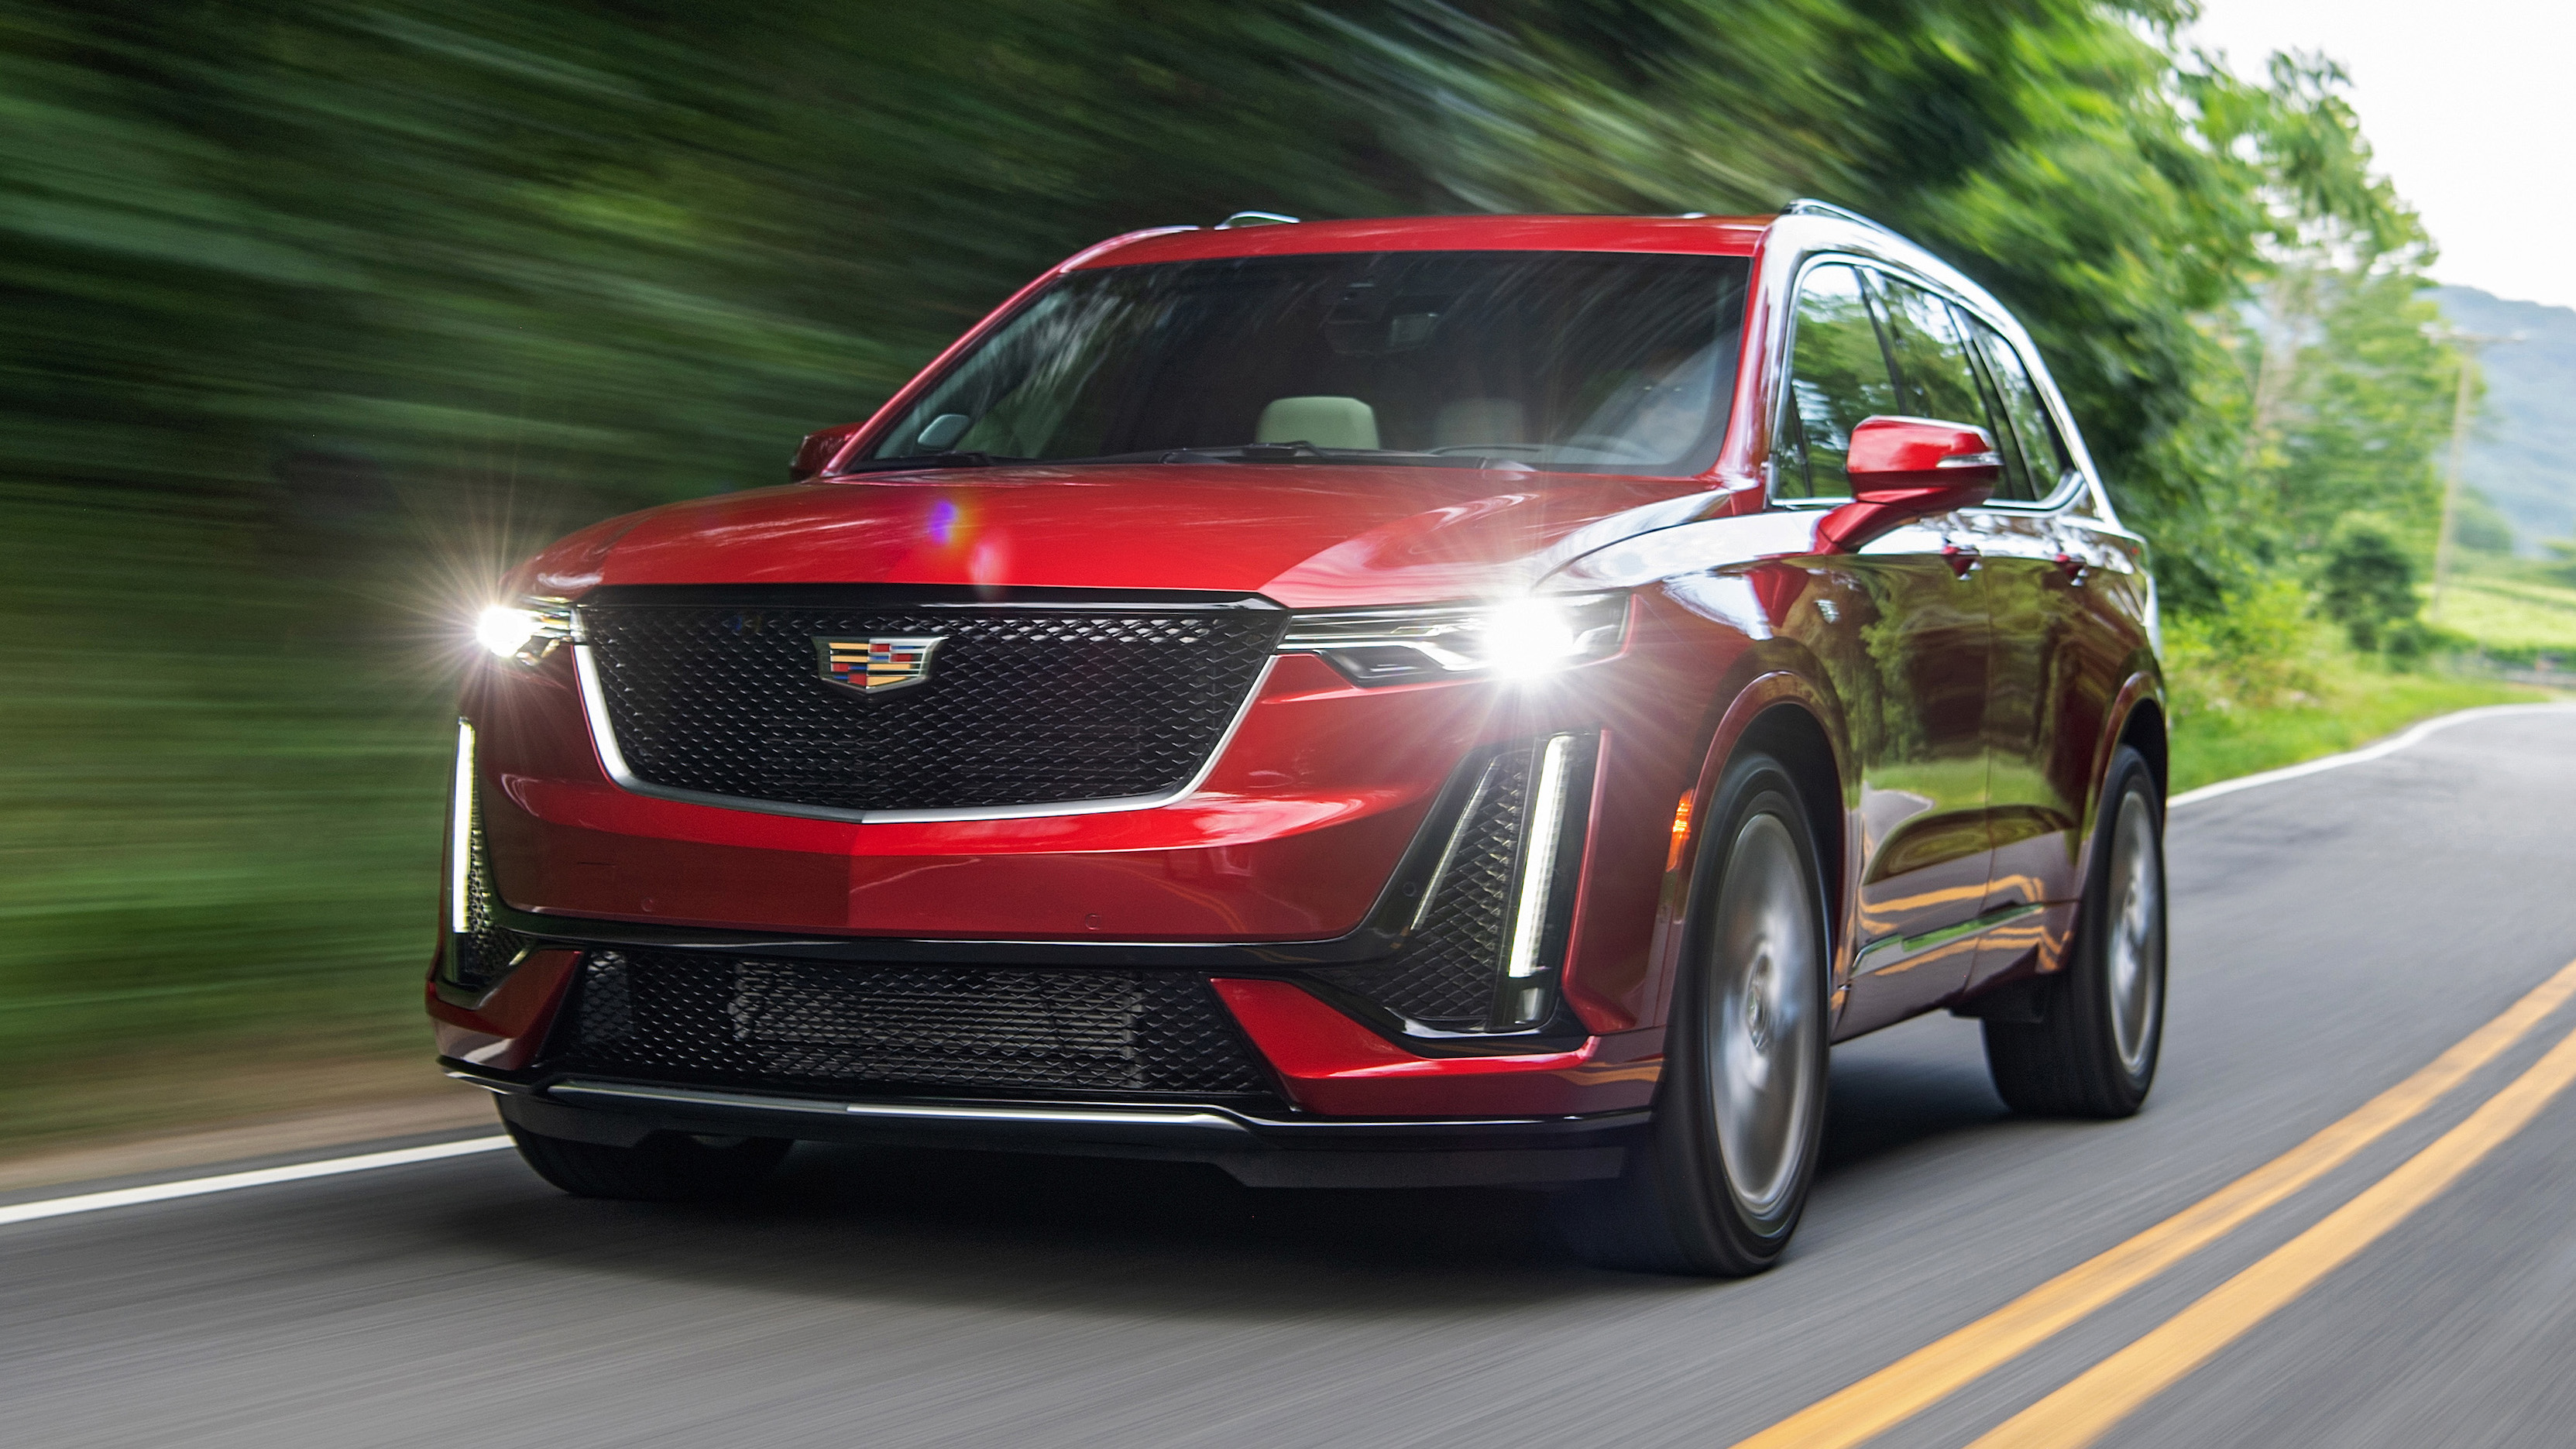 Car Shows Near Me >> 2020 Cadillac XT6 Sport First Drive Review | What's new, style and driving impressions | Autoblog